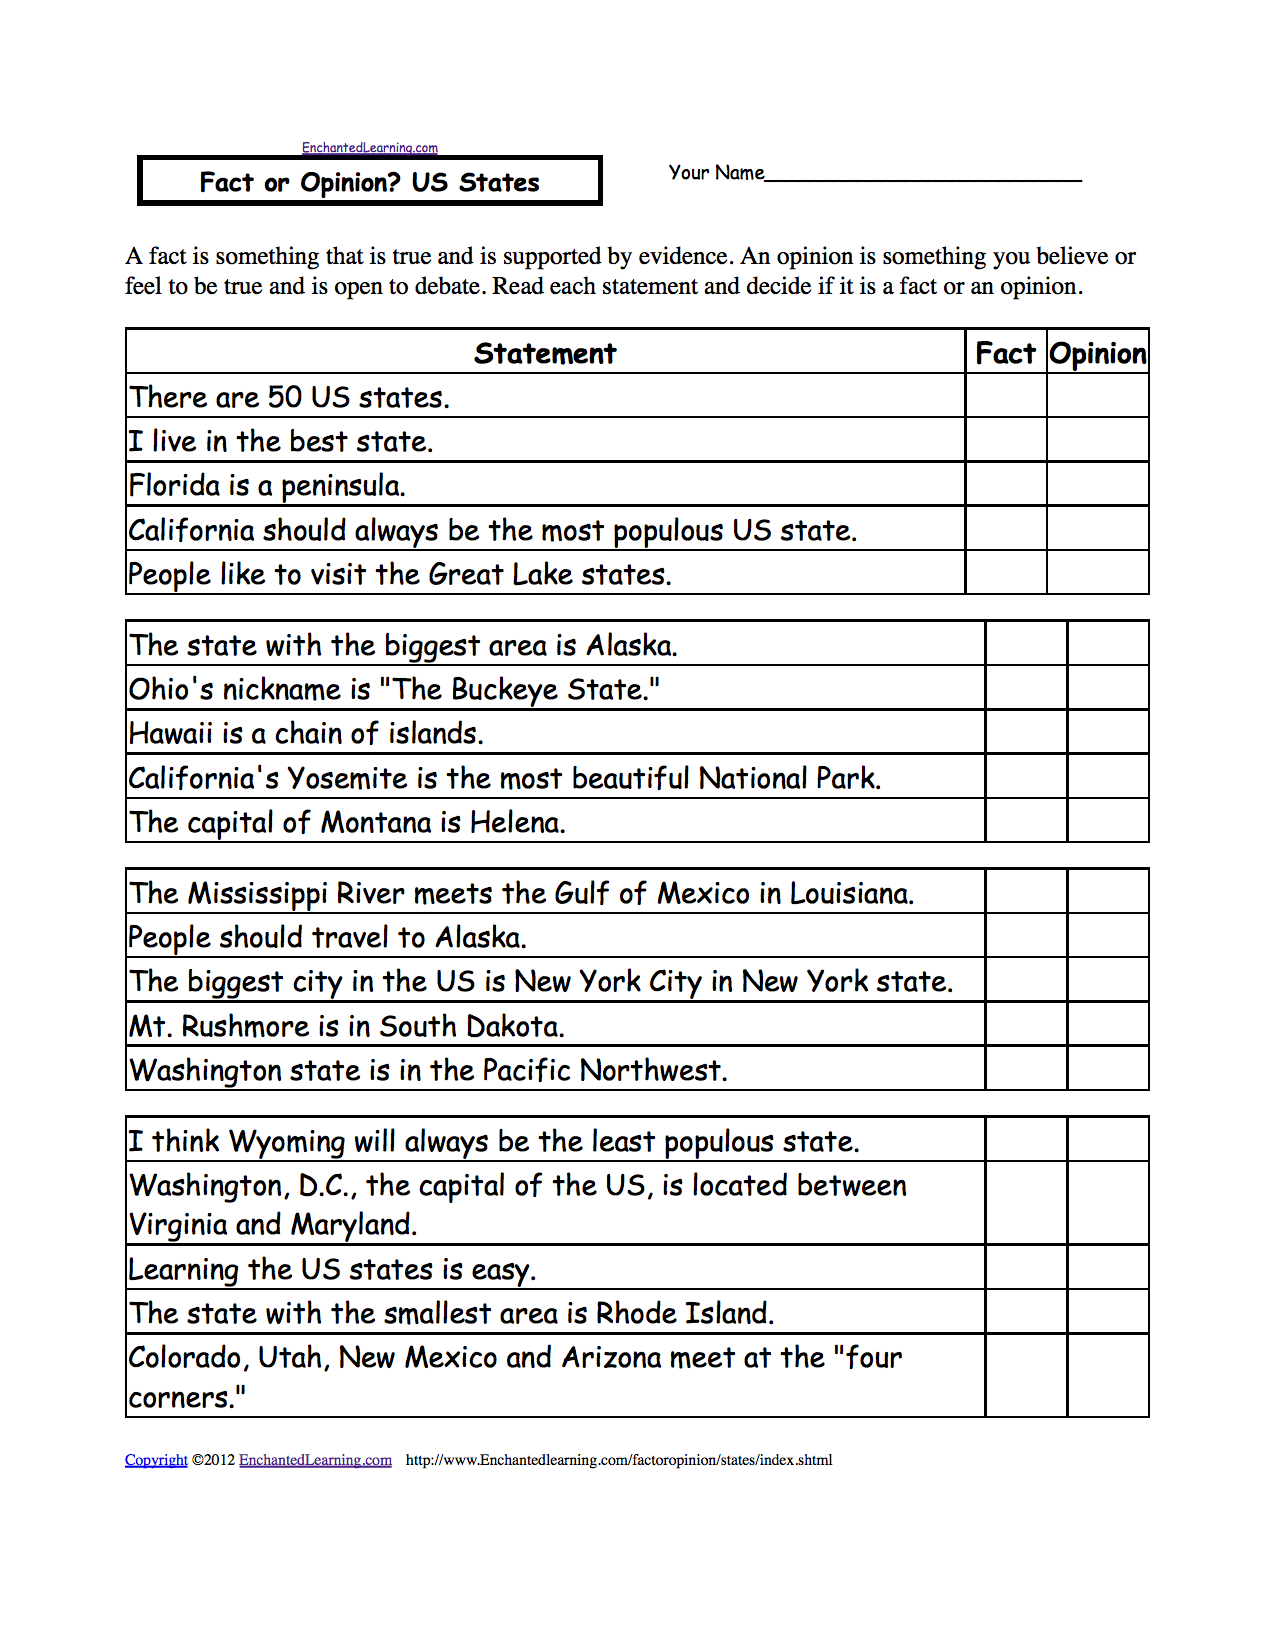 Worksheets World Geography Worksheets High School fact or opinion checkmark worksheets to print enchantedlearning com com